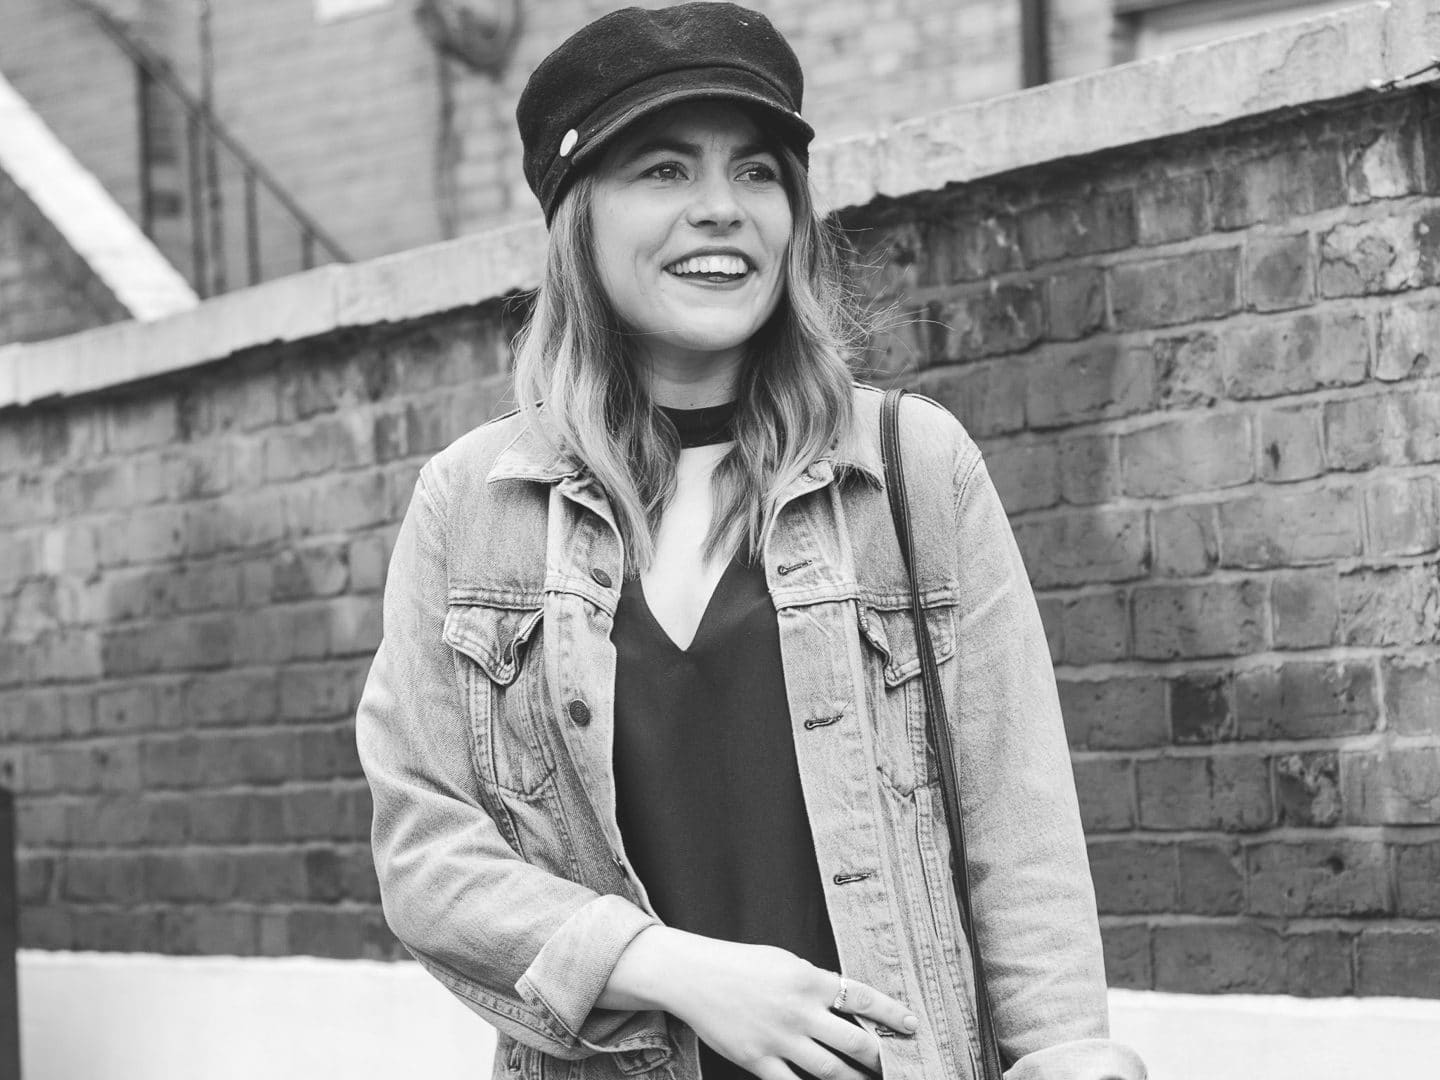 Hannah of Paloma in Disguise | Ethical Influencers